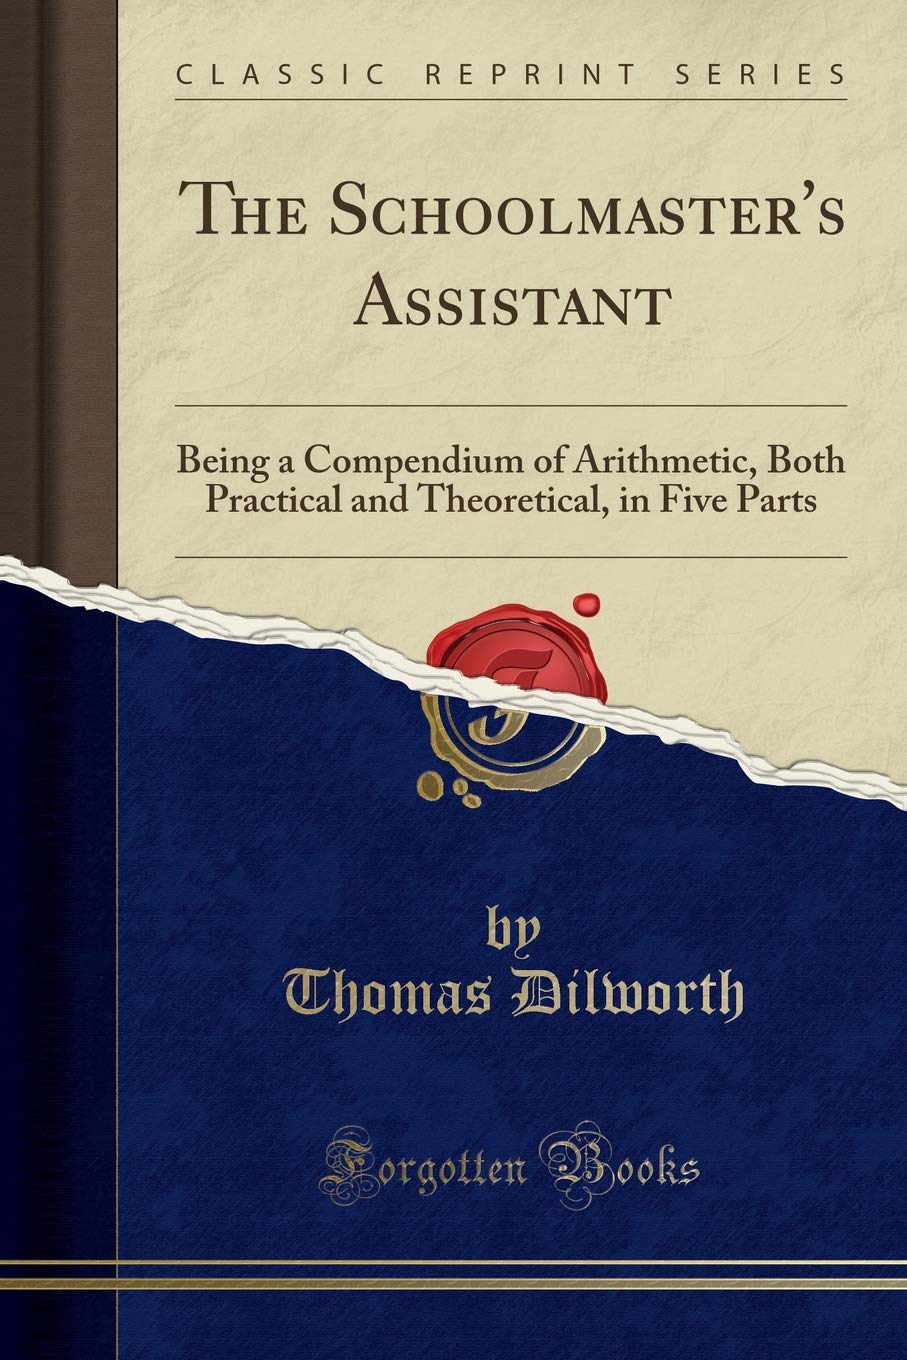 Download The Schoolmaster's Assistant: Being a Compendium of Arithmetic, Both Practical and Theoretical, in Five Parts (Classic Reprint) ebook